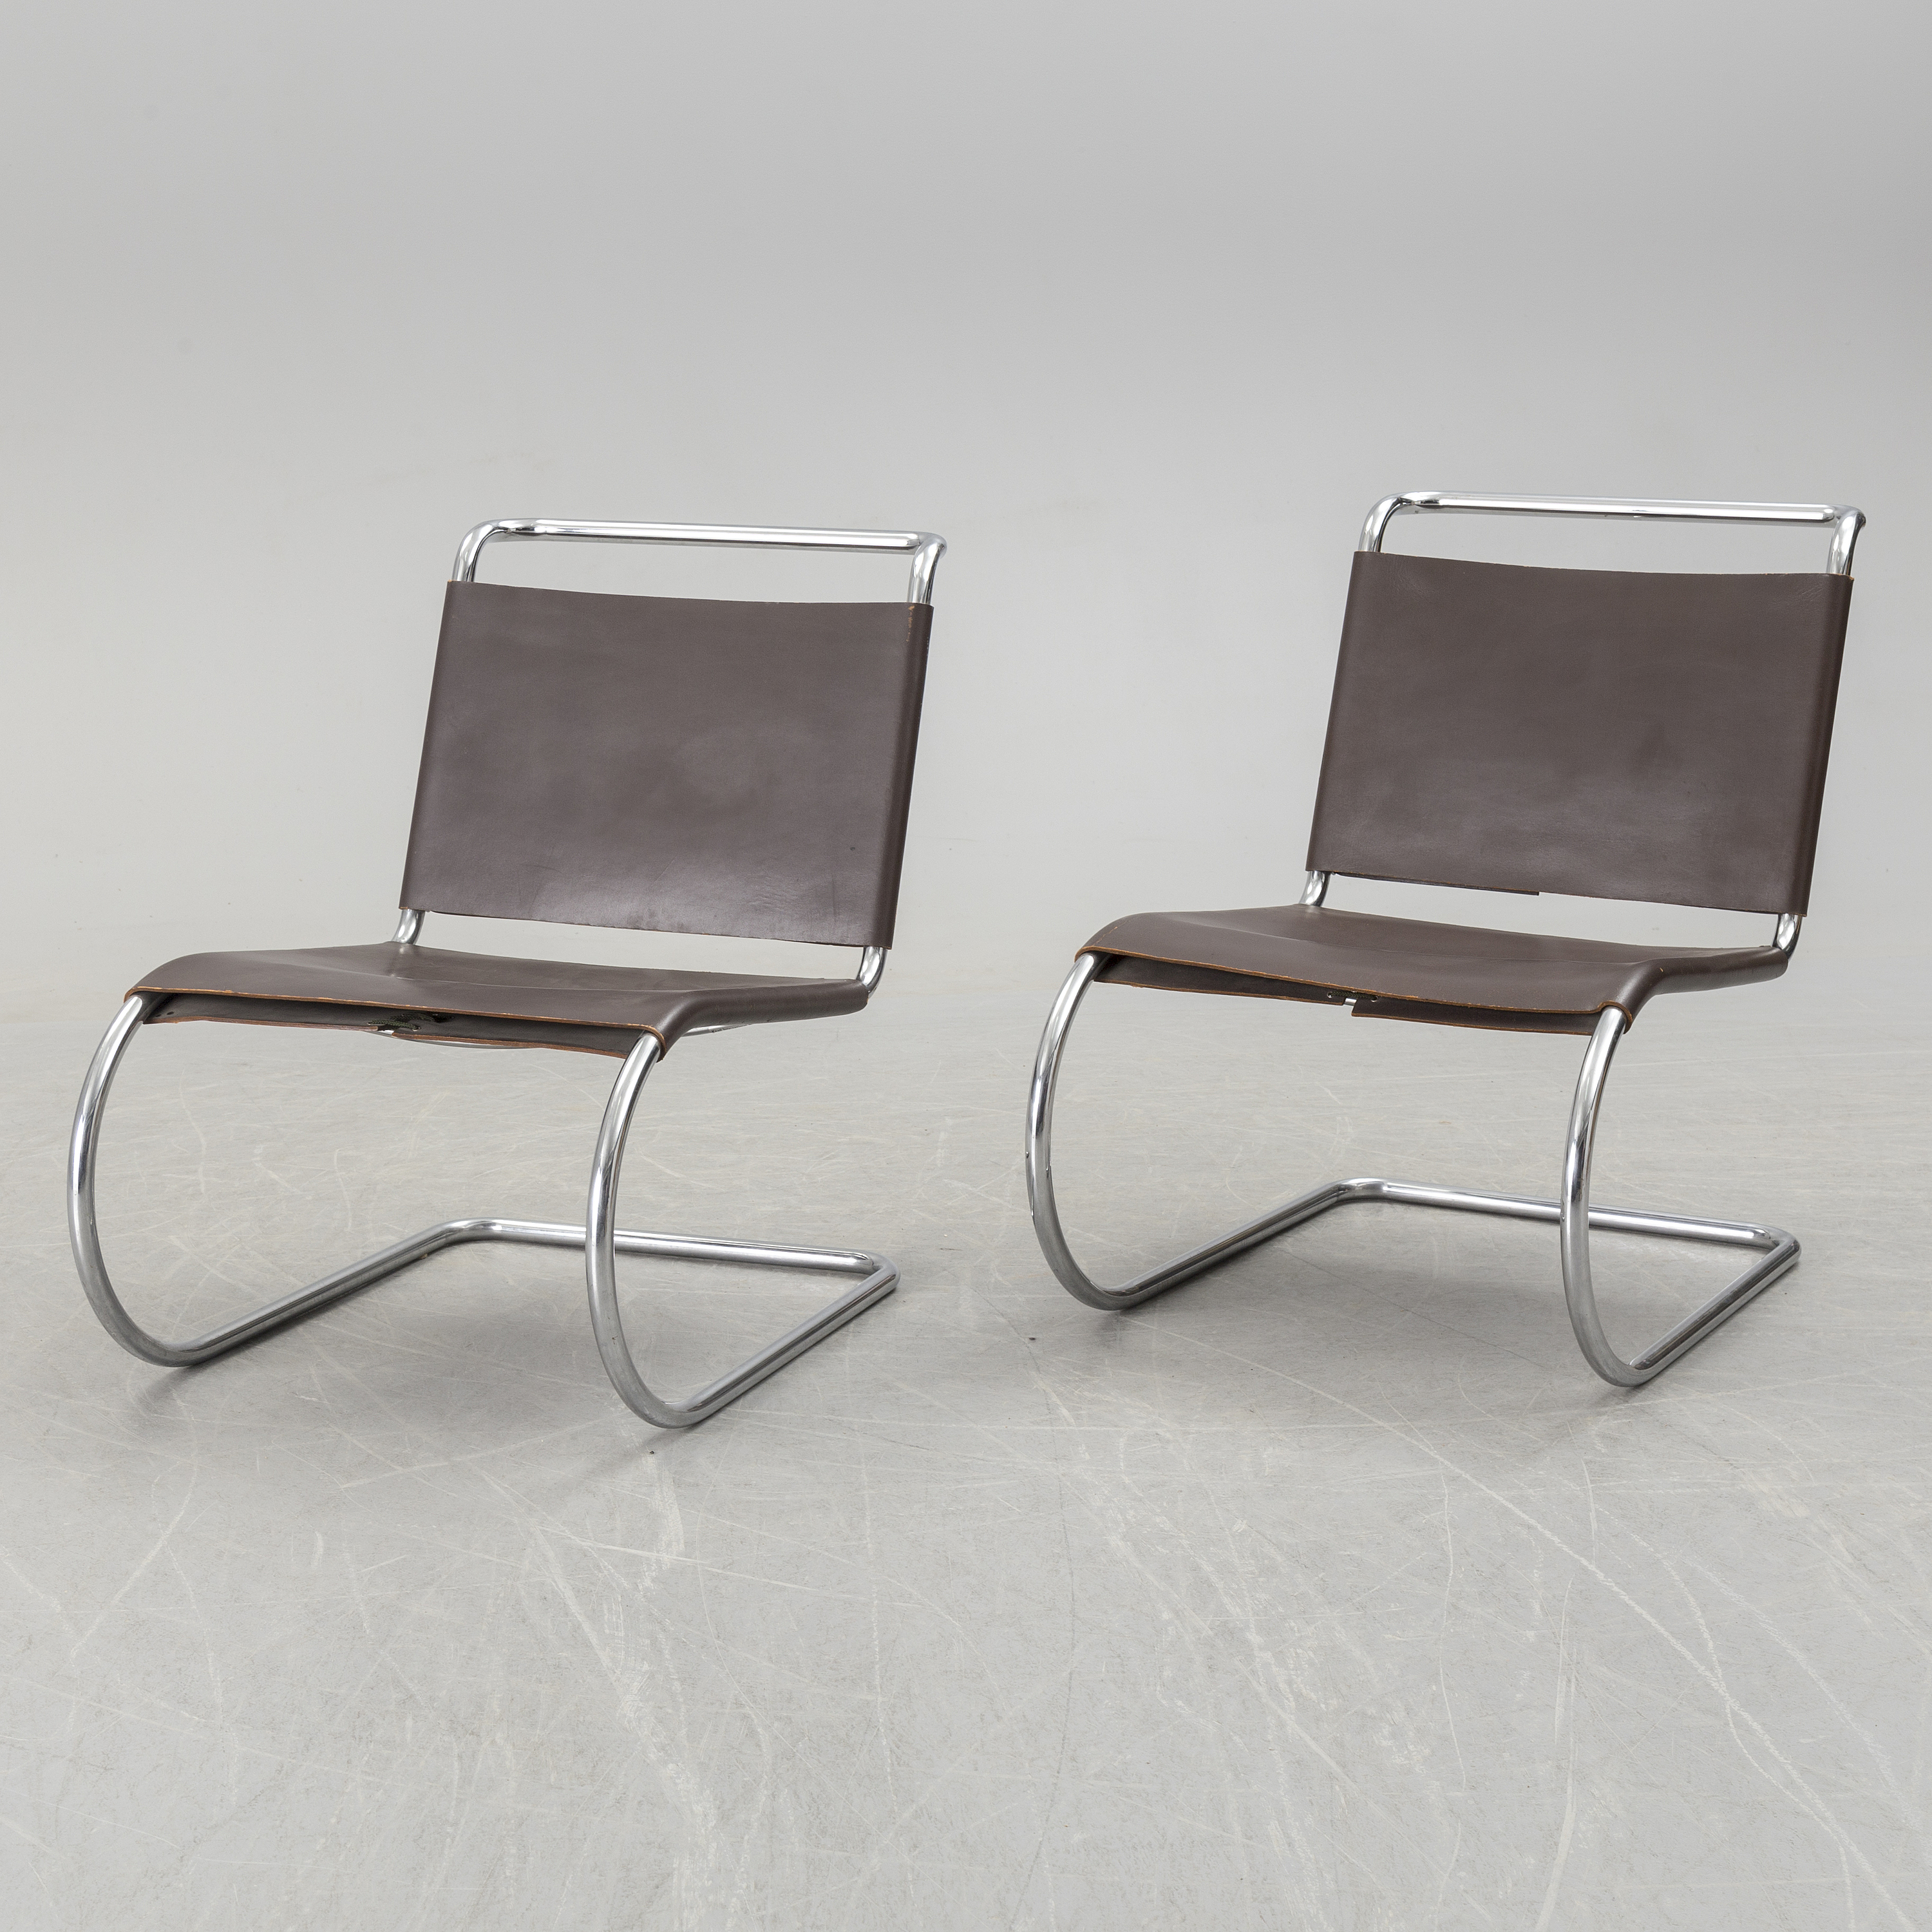 Awesome A Pair Of Mr Lounge Chairs By Ludwig Mies Van Der Rohe Squirreltailoven Fun Painted Chair Ideas Images Squirreltailovenorg